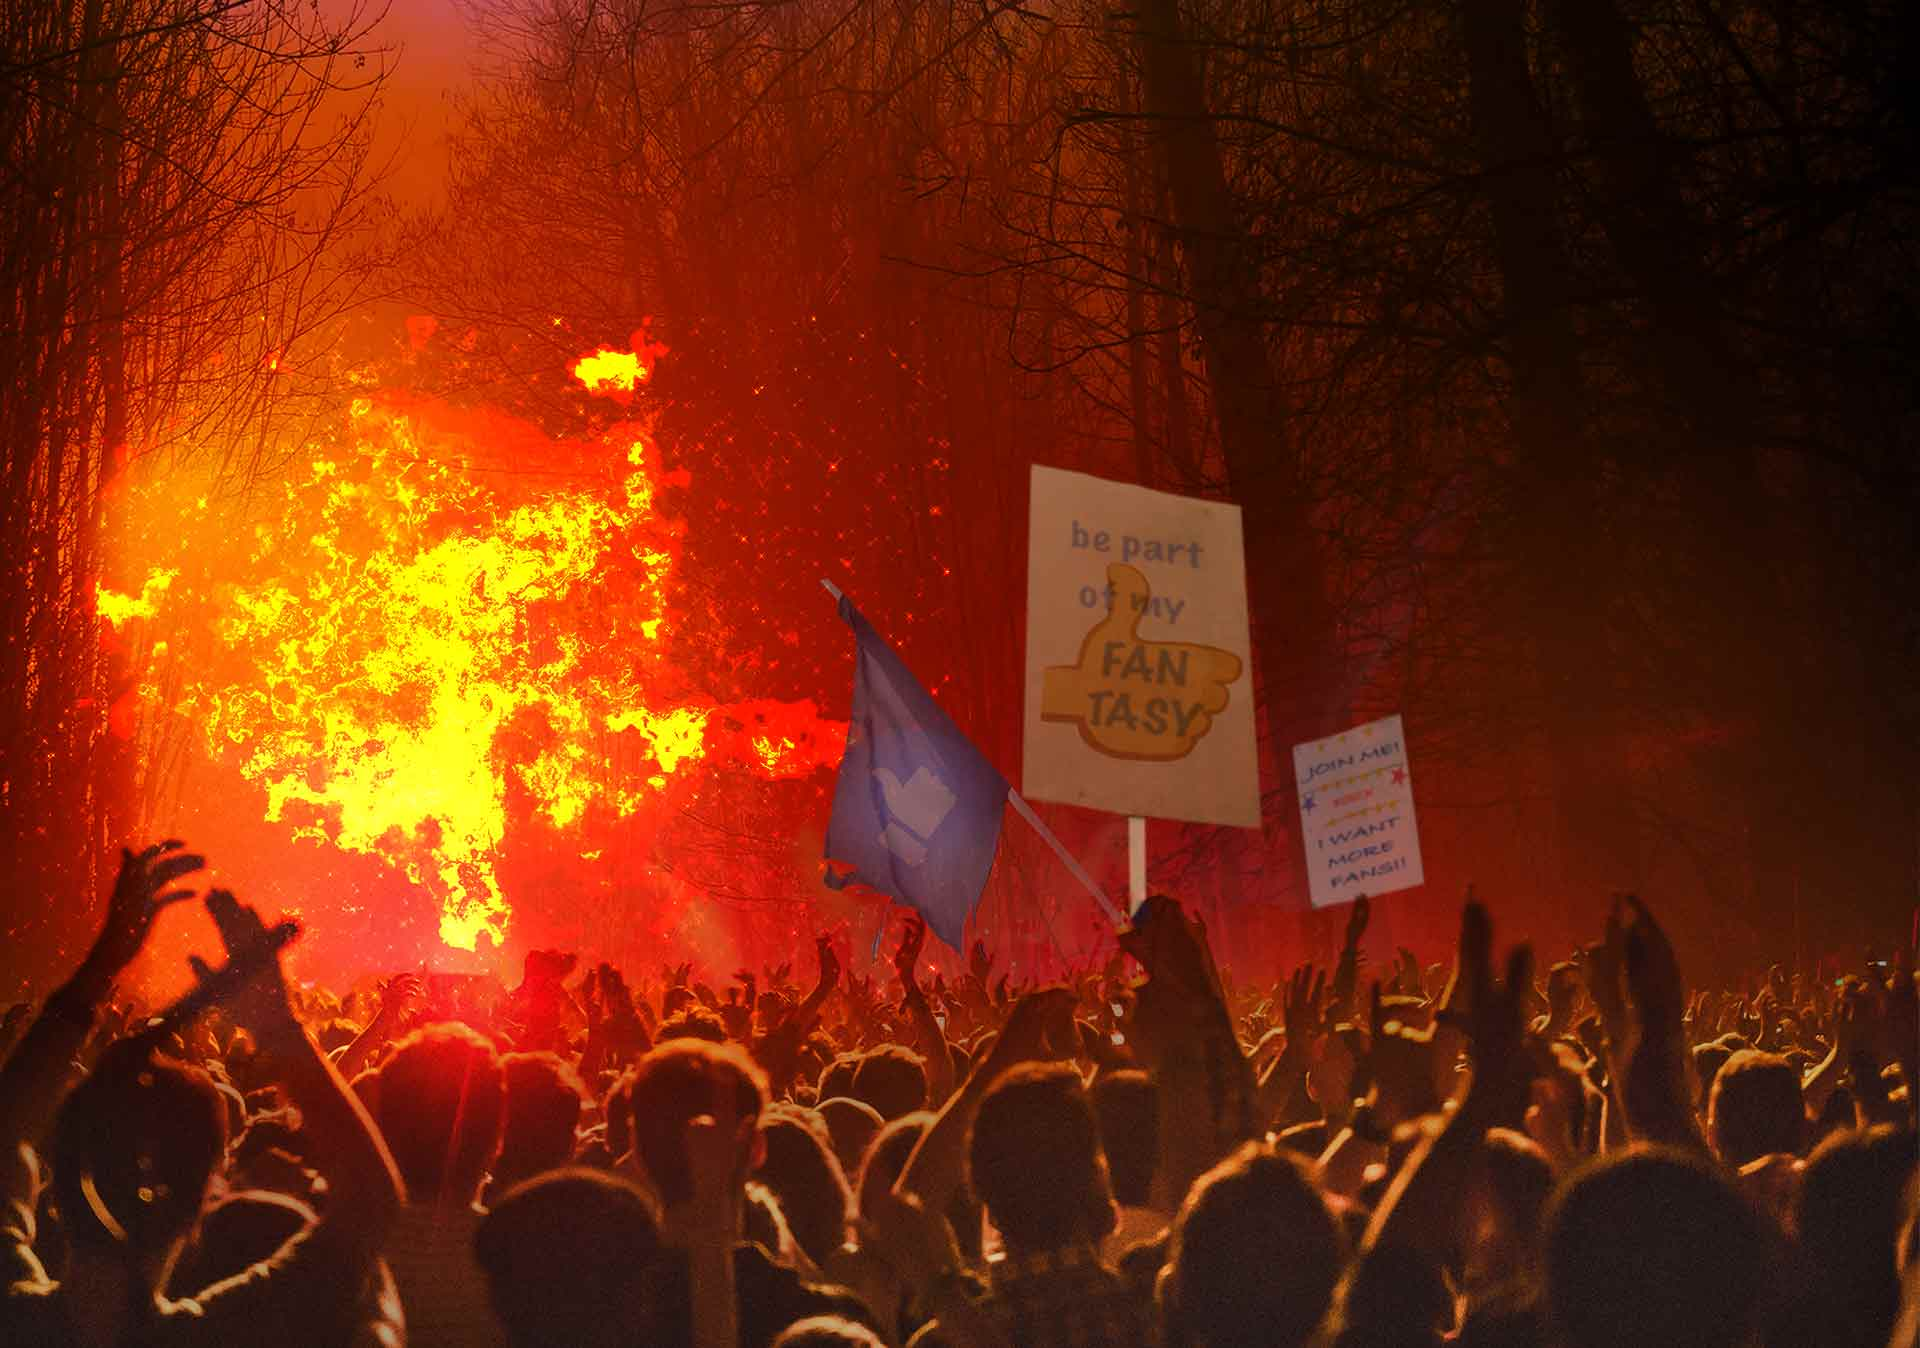 A massive crowd of placard-waving social media fans cheering amidst a blazing forest fire they seem to have started